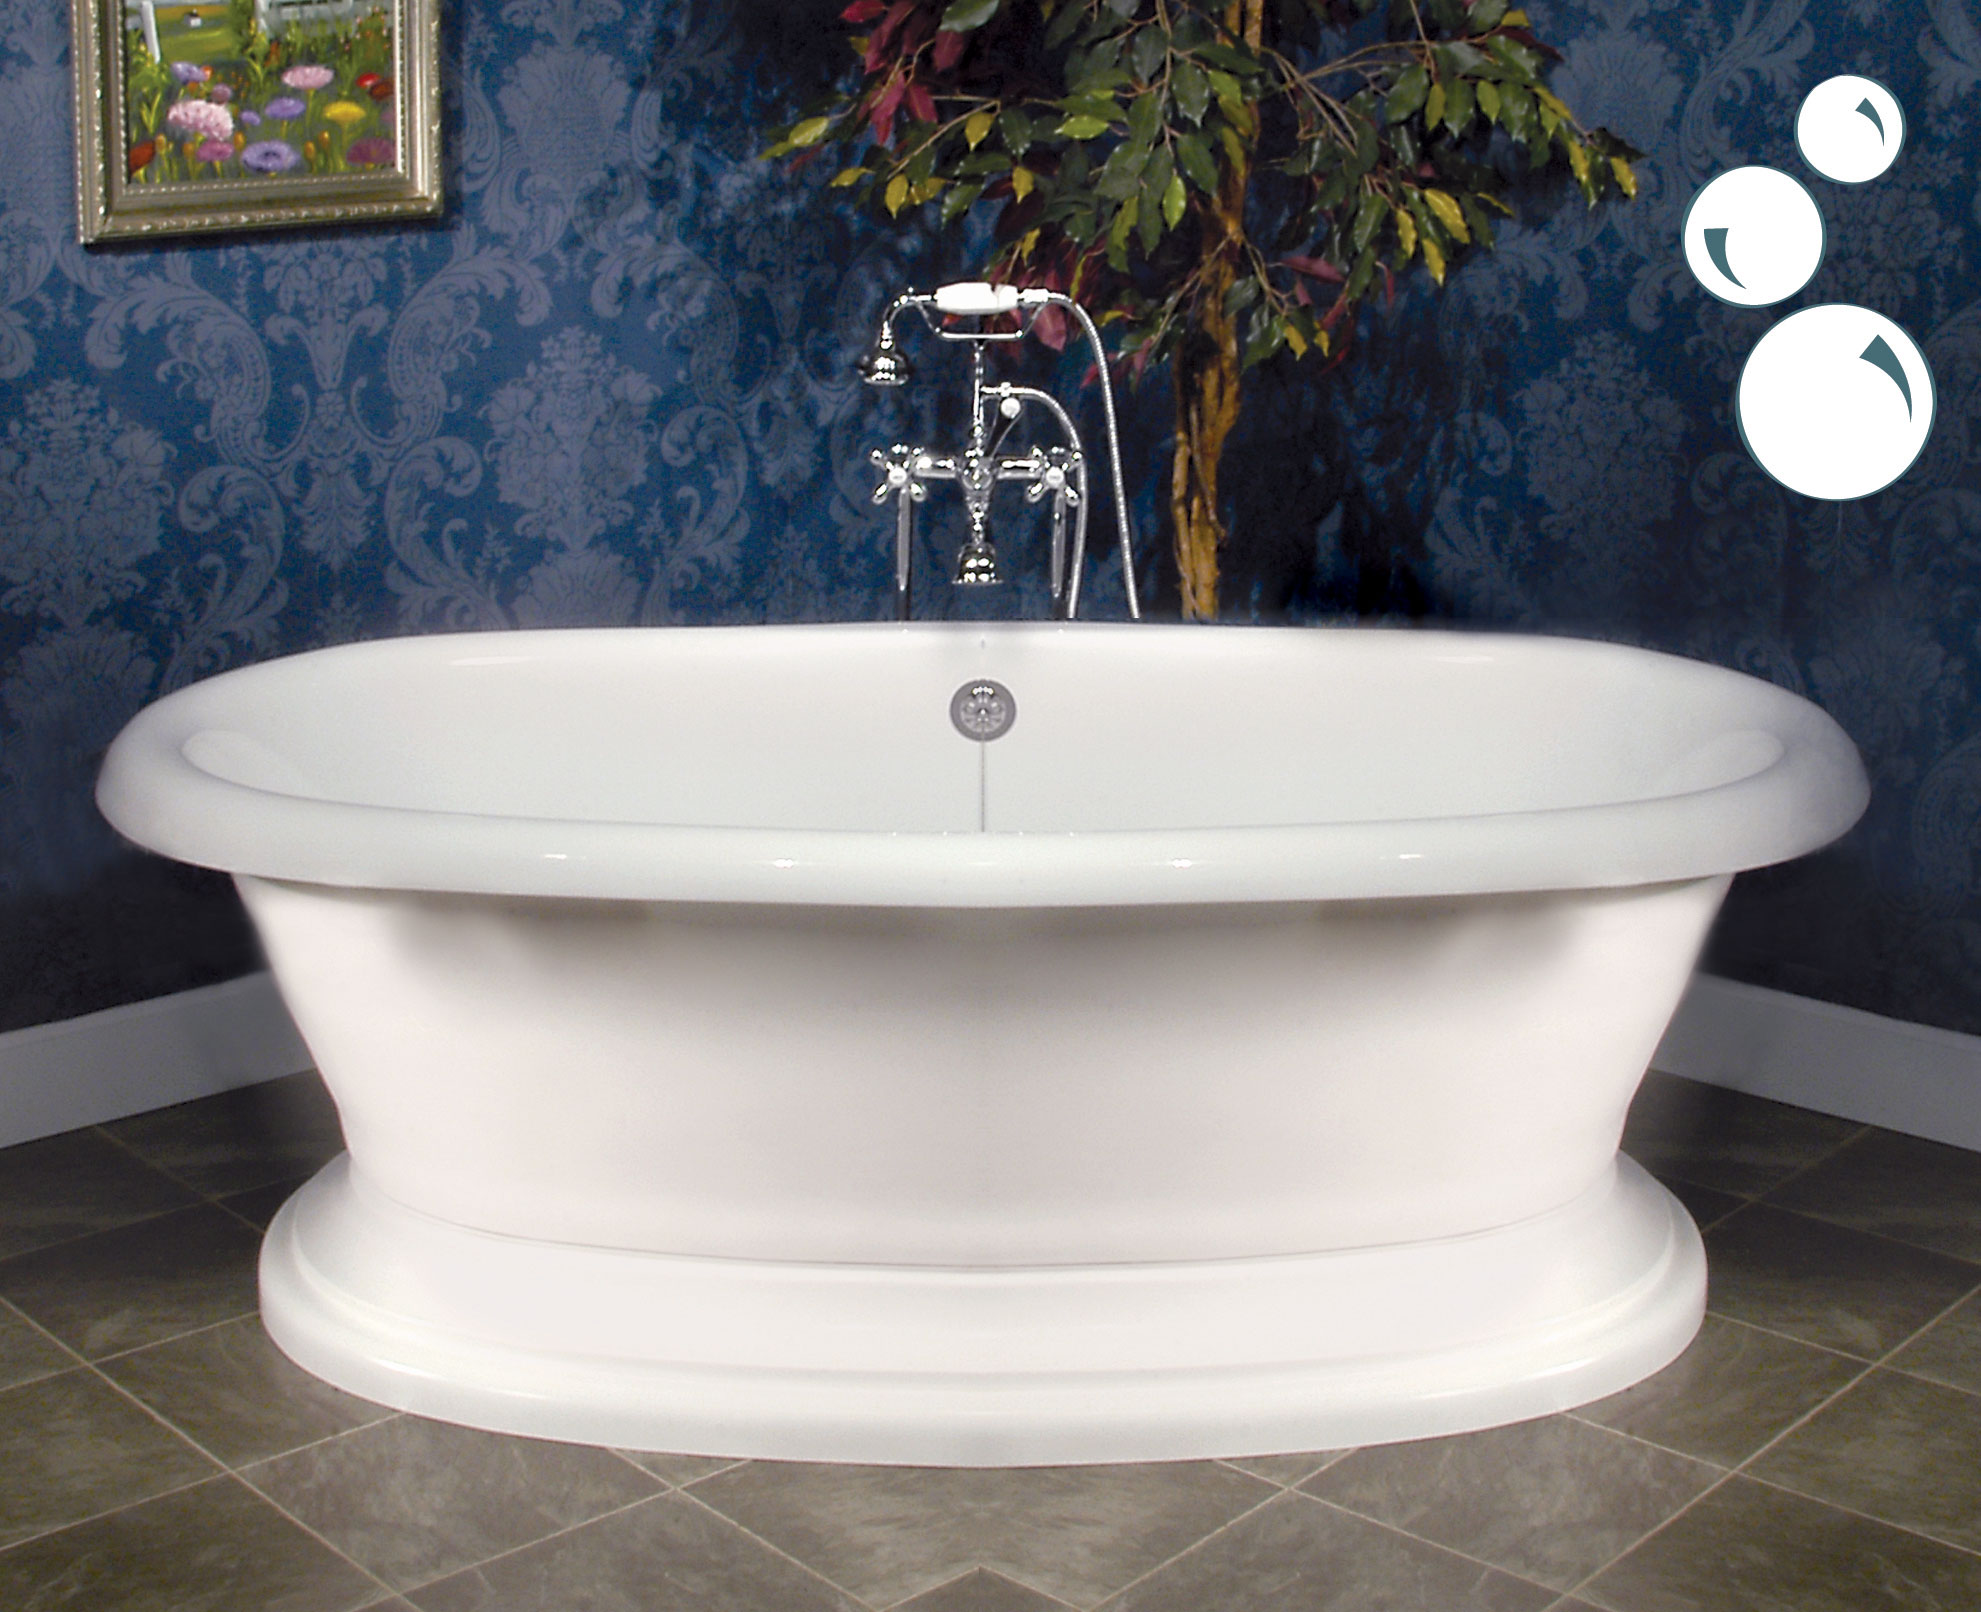 New Line Of Air Bath Tubs From Signature Hardware